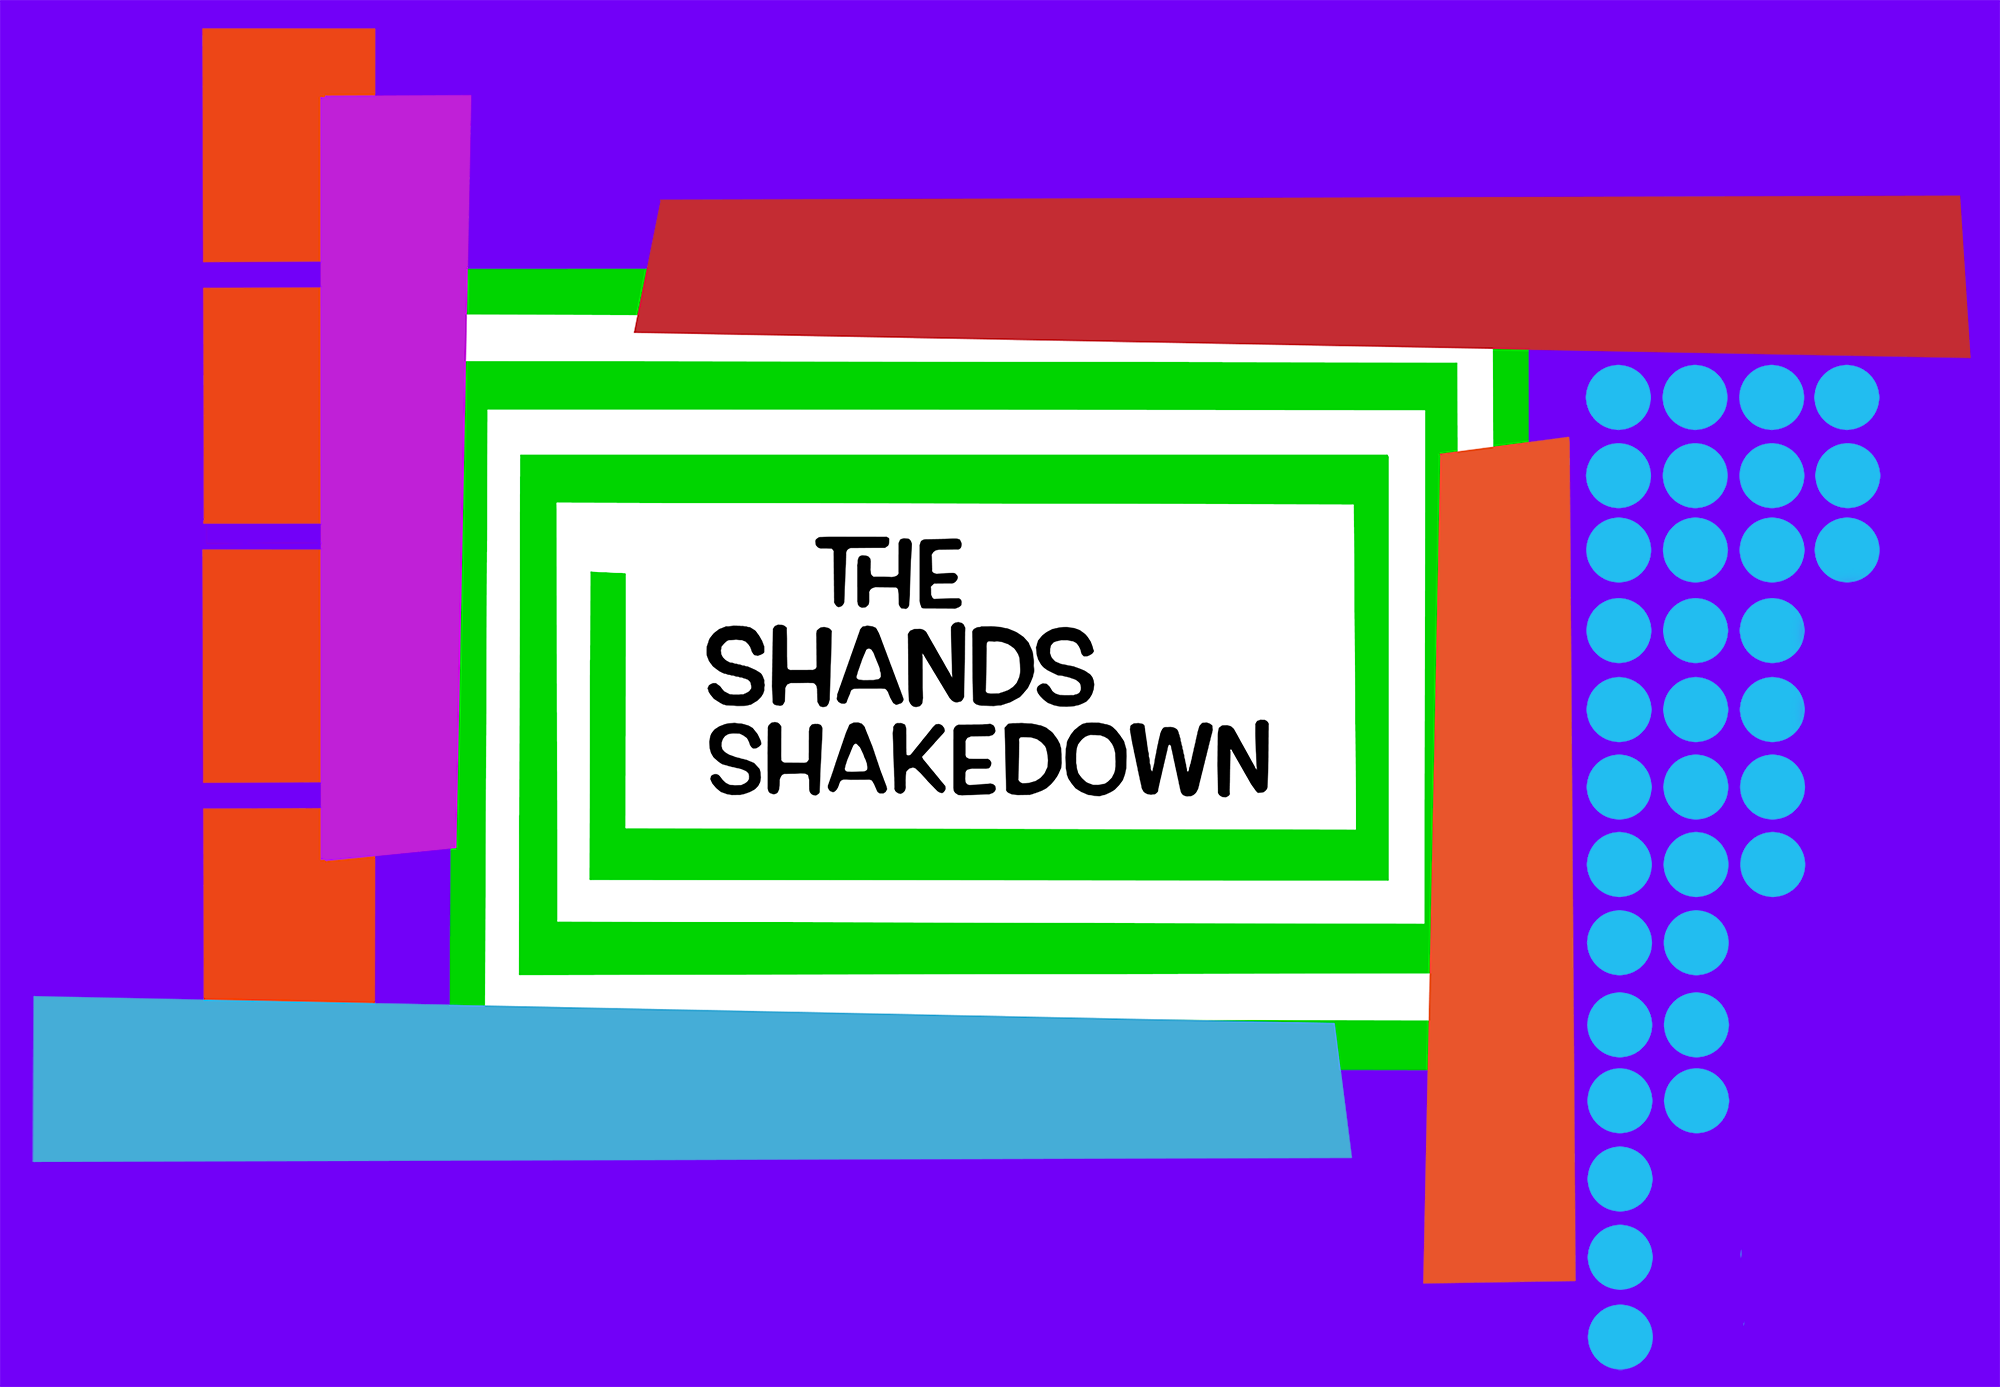 the shands shakedown youtube channel